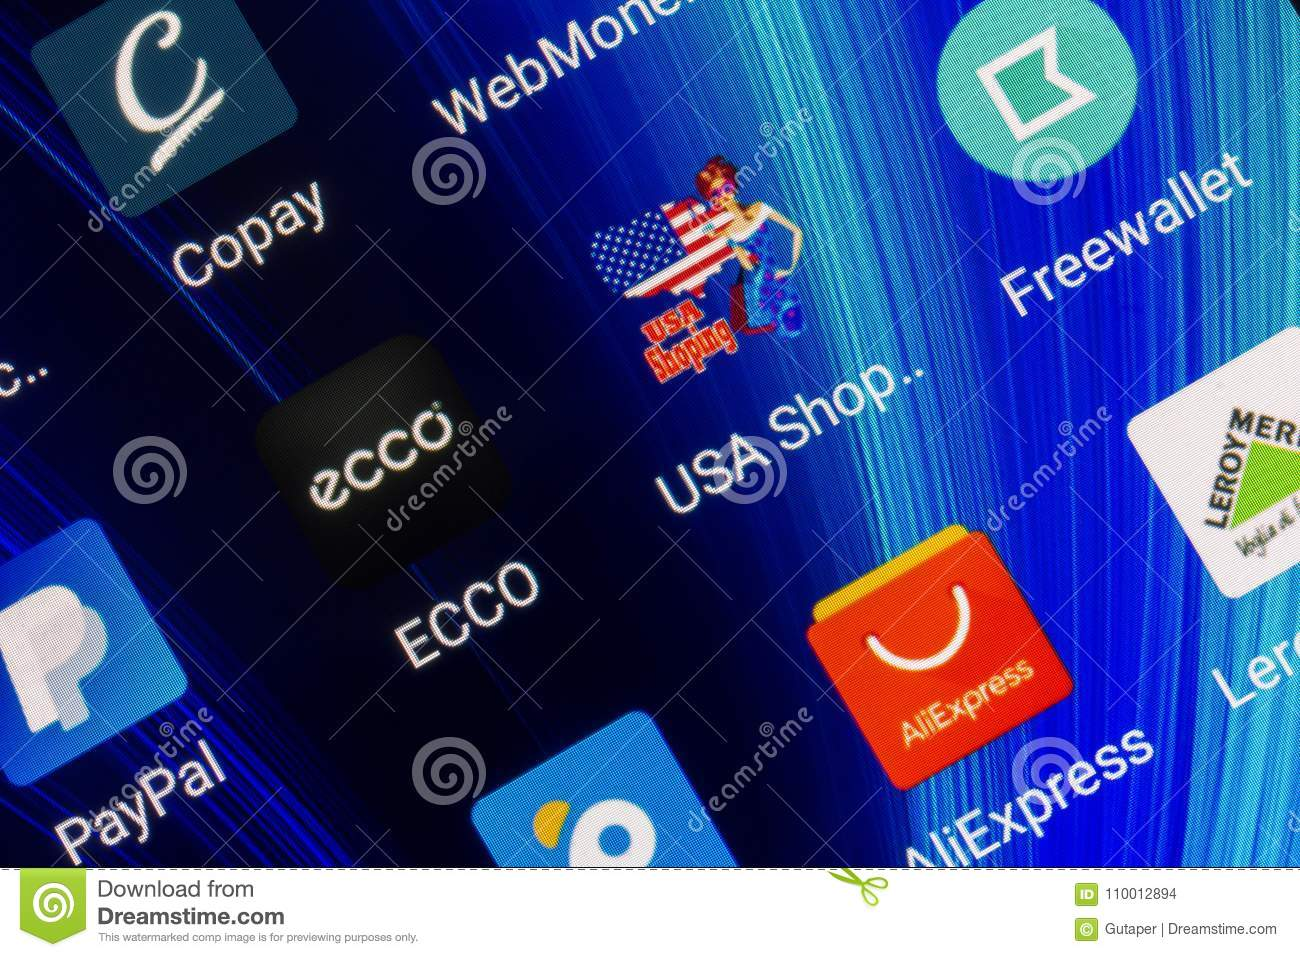 Mobile App For Online Shopping At Popular Shop Ecco Usa Shopping